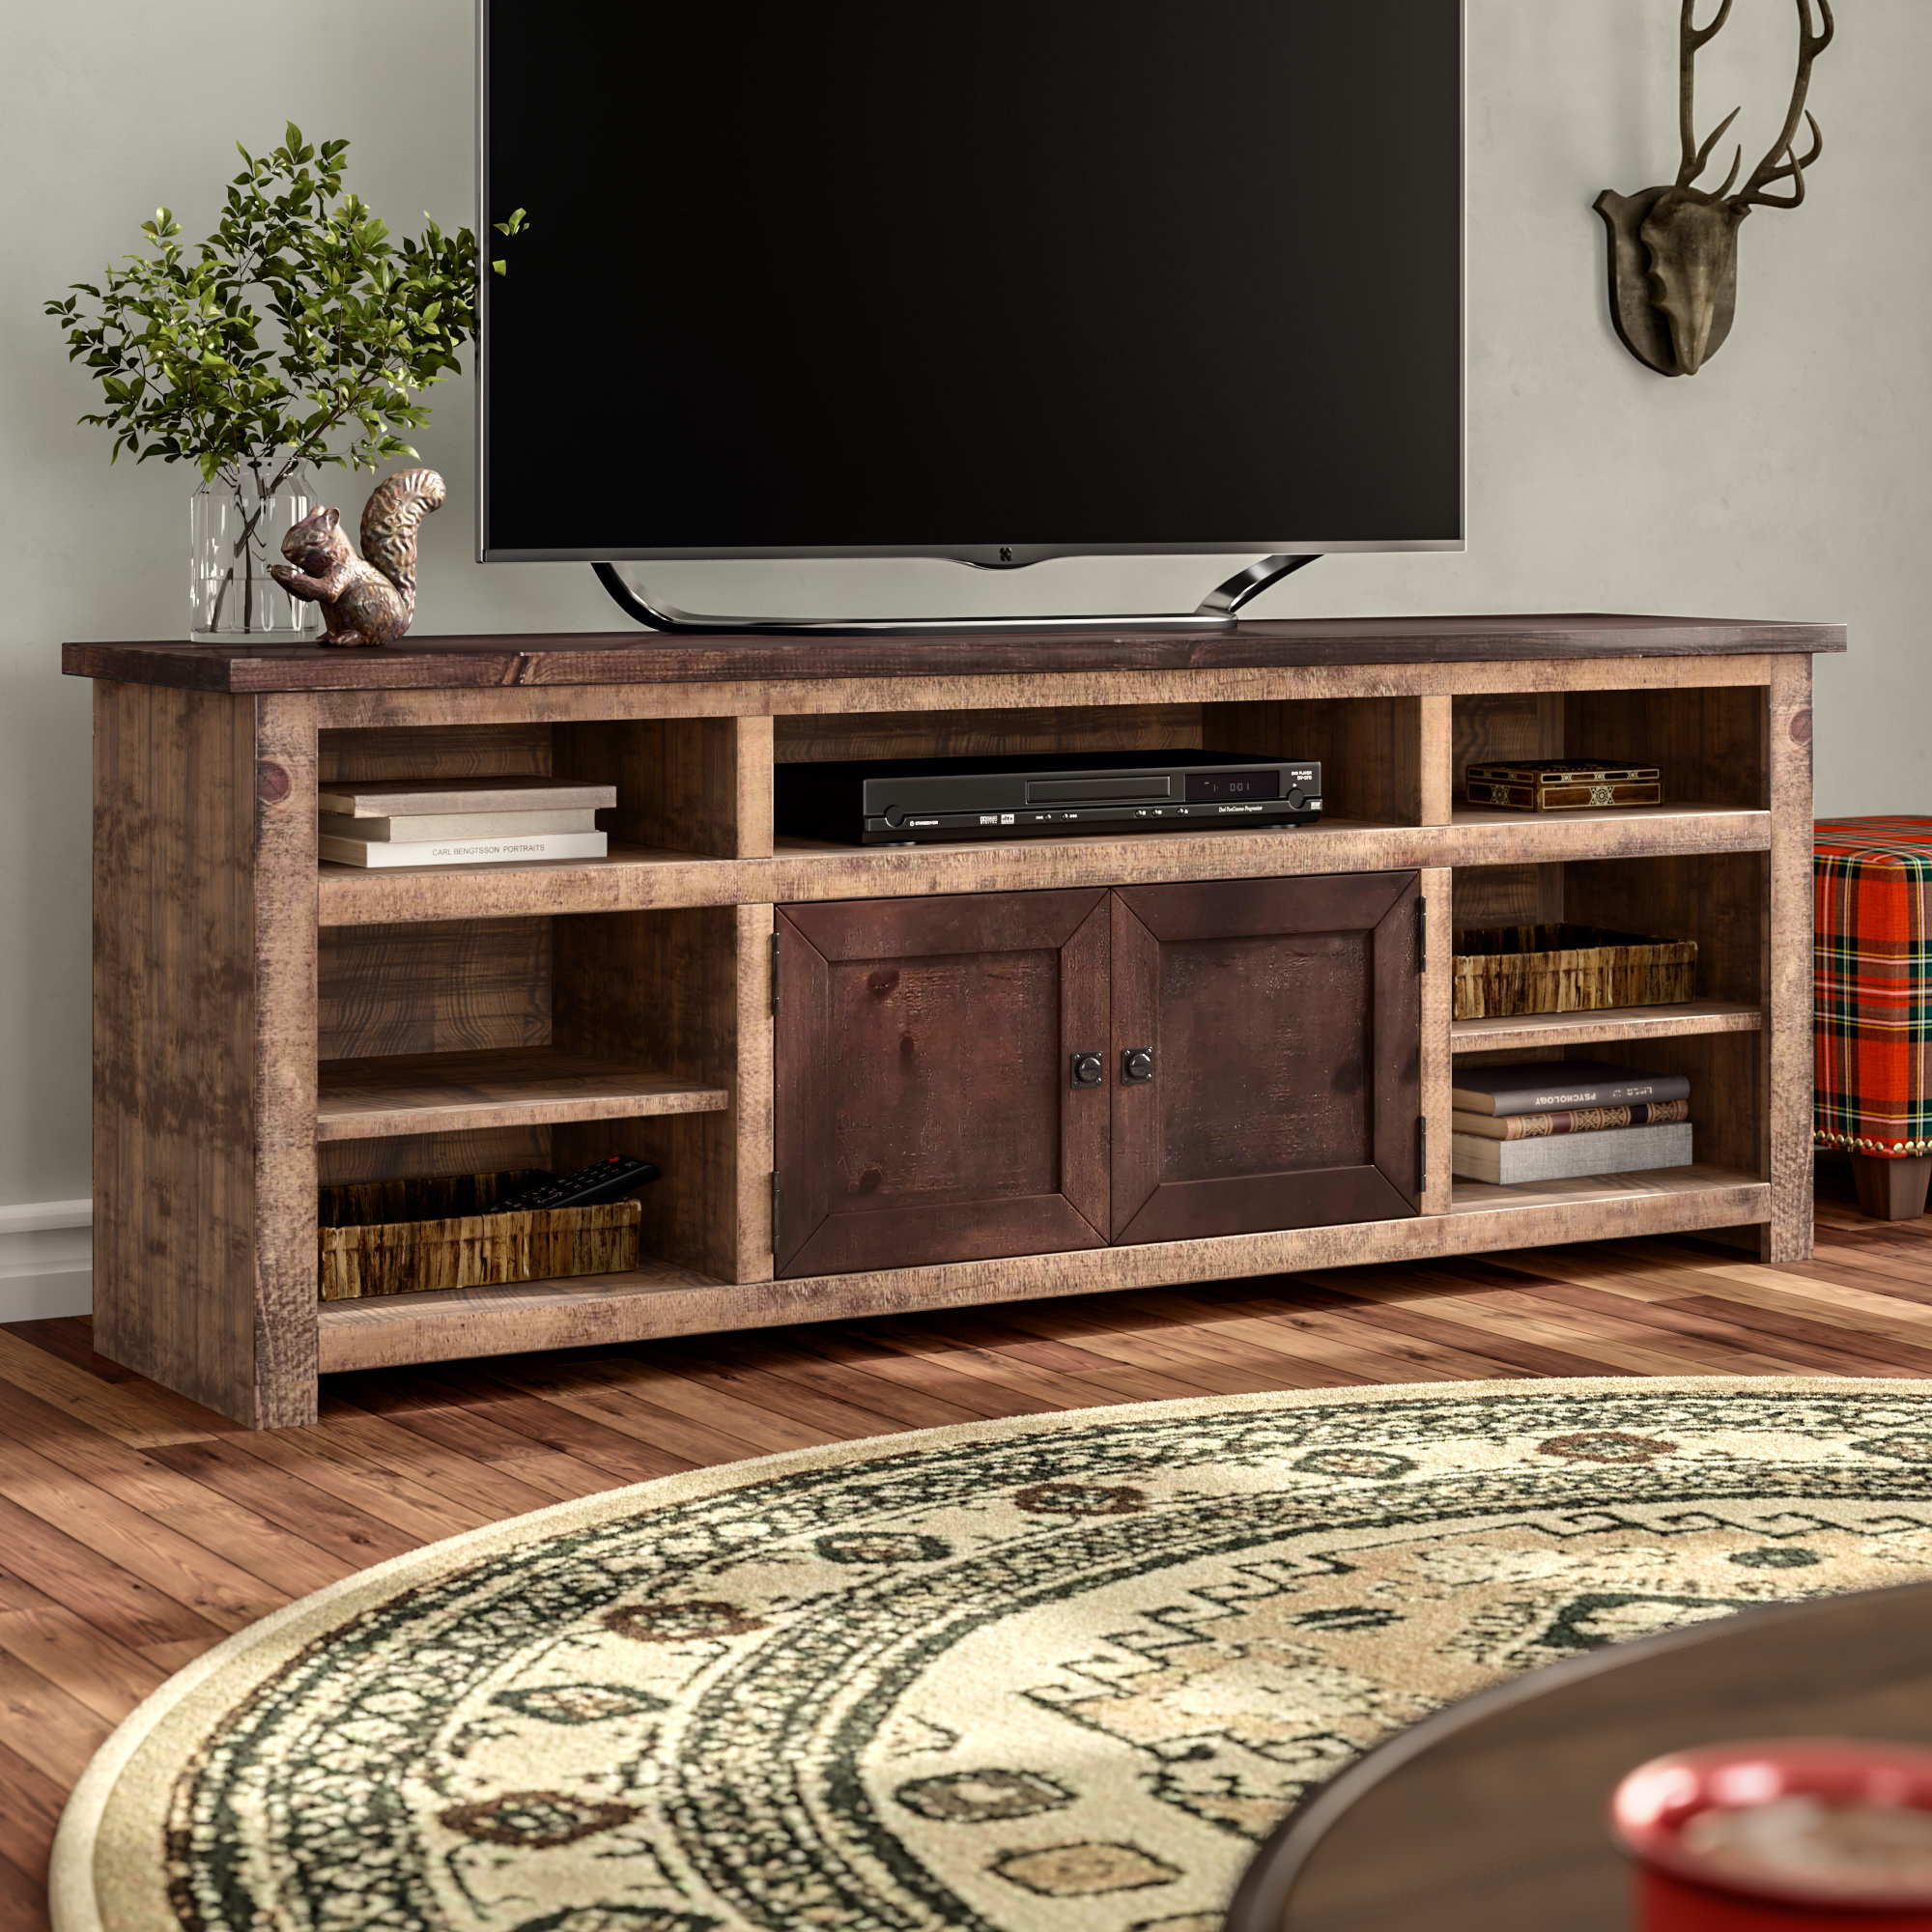 70 Inch Tv Stands | Joss & Main regarding Walton 74 Inch Open Tv Stands (Image 4 of 30)